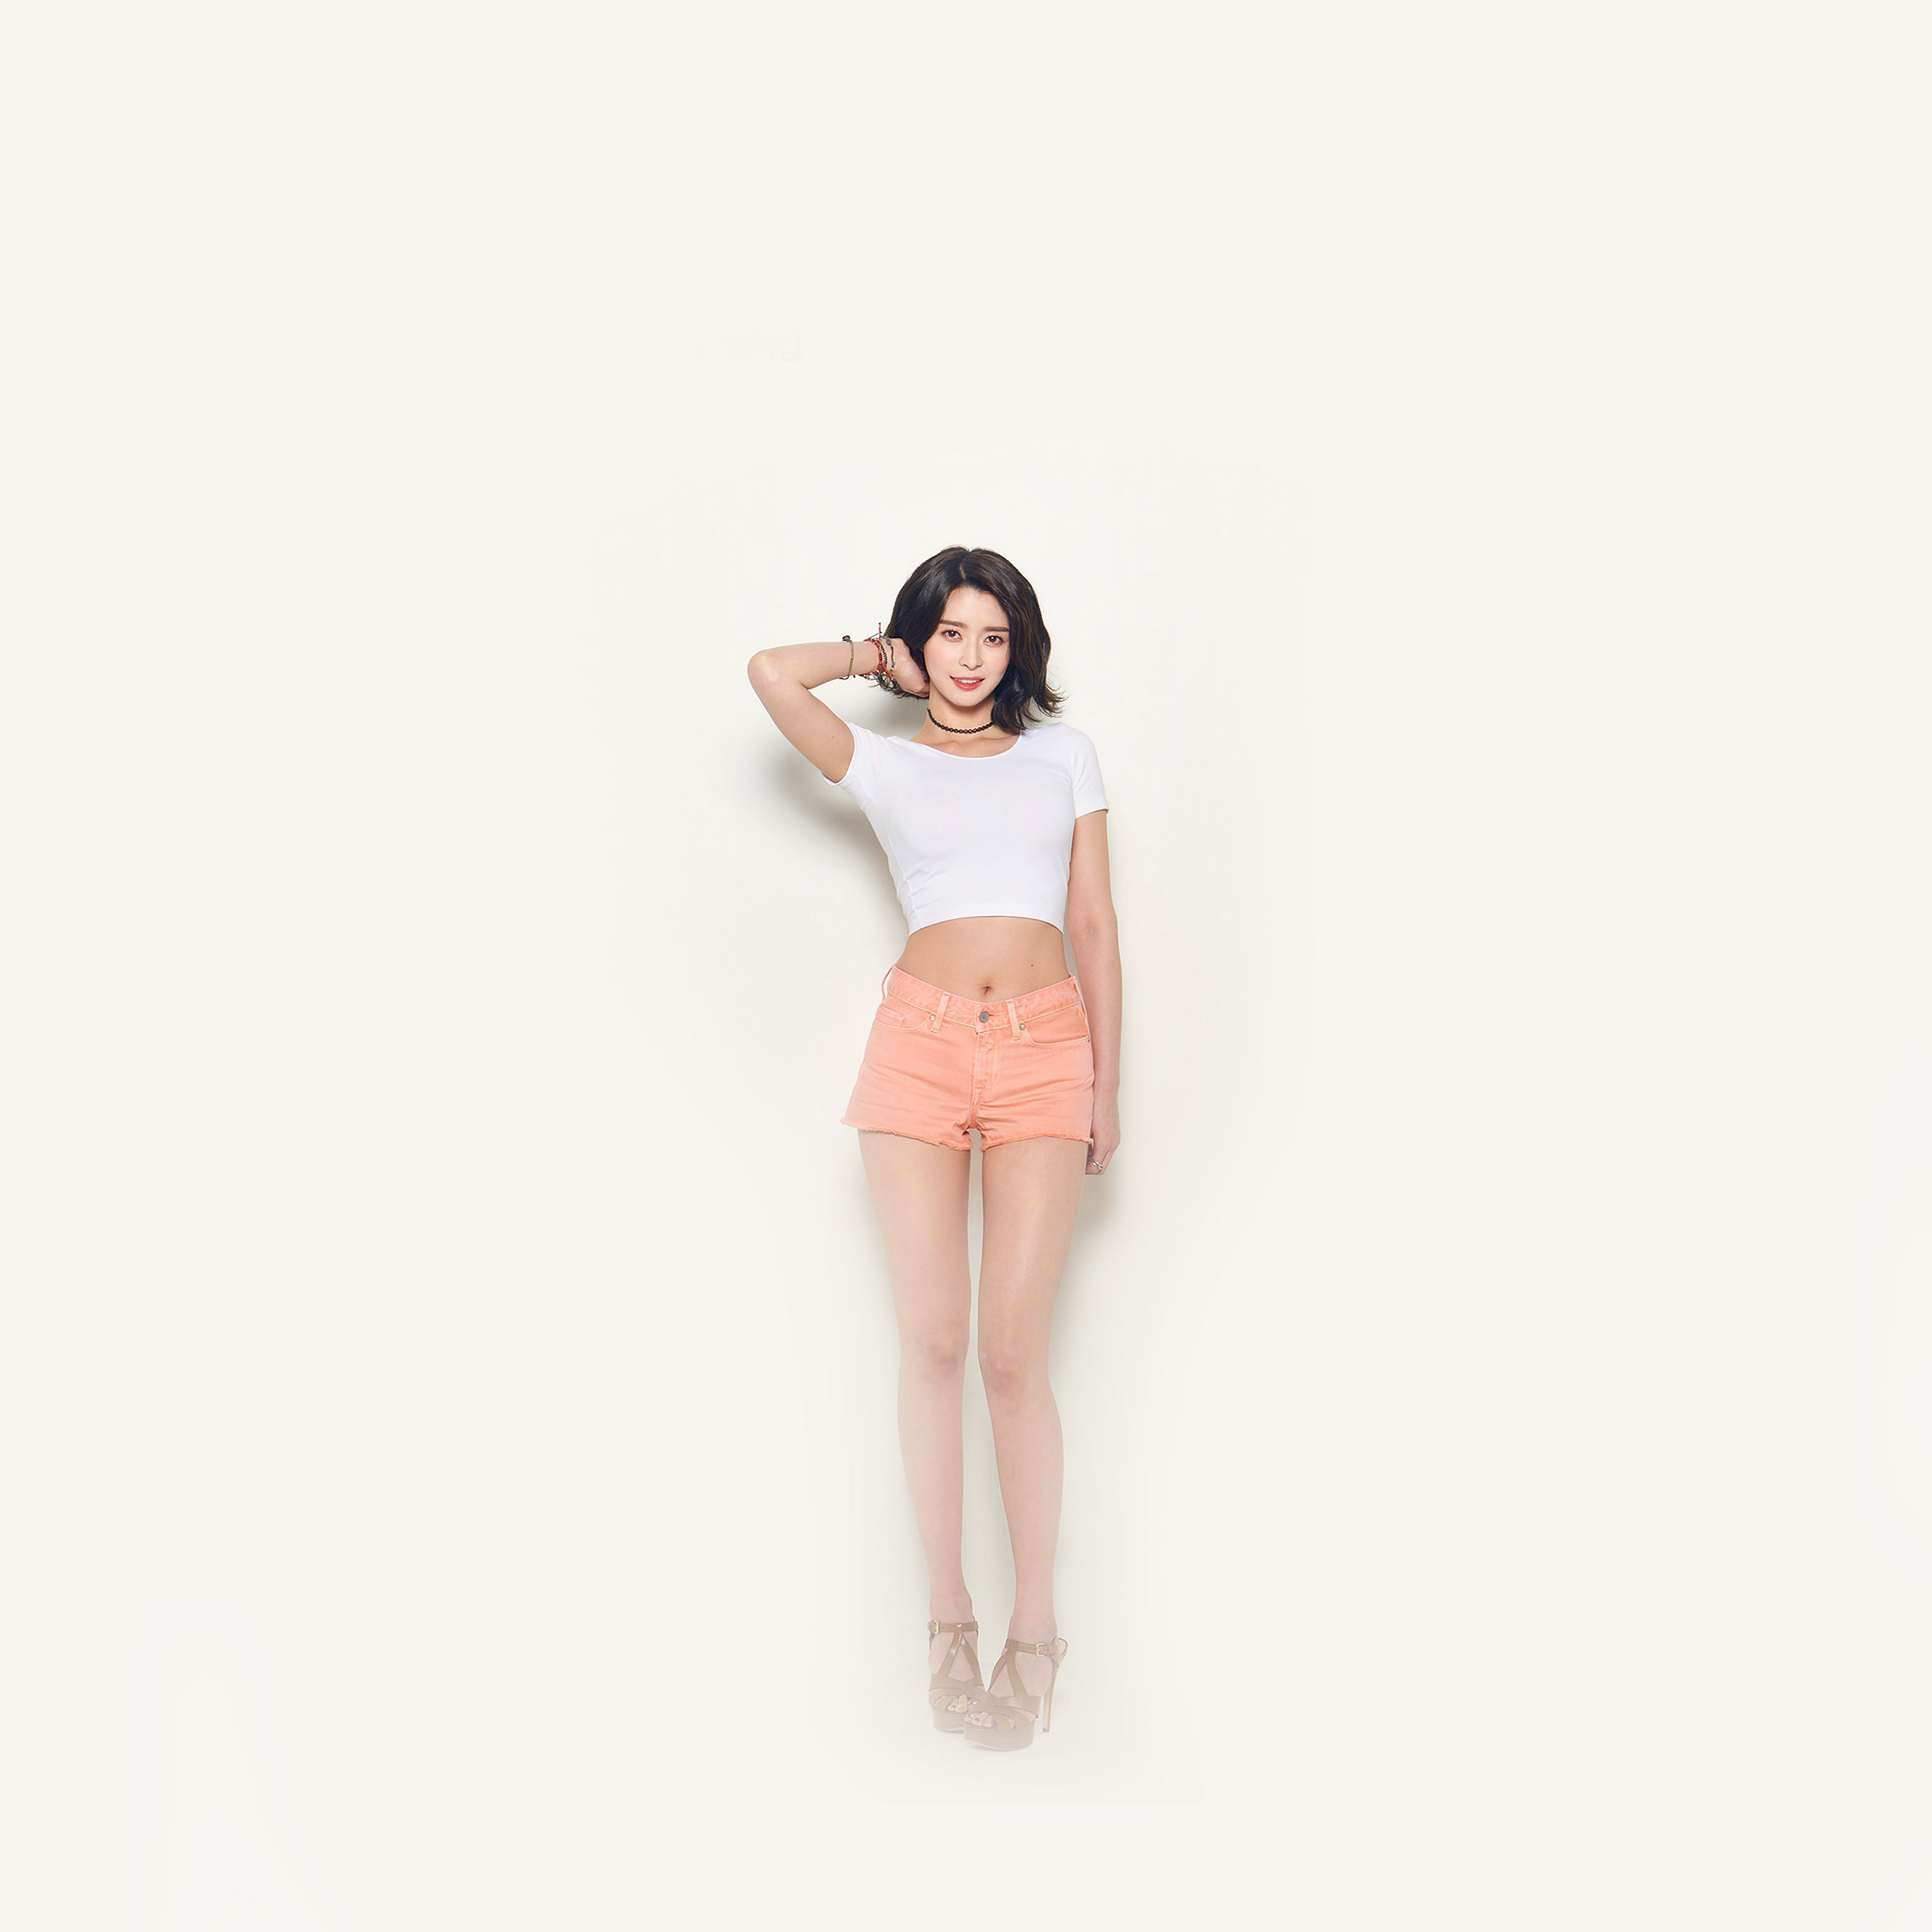 Hk23 Nara Kwon White Simple Girl Kpop Wallpaper